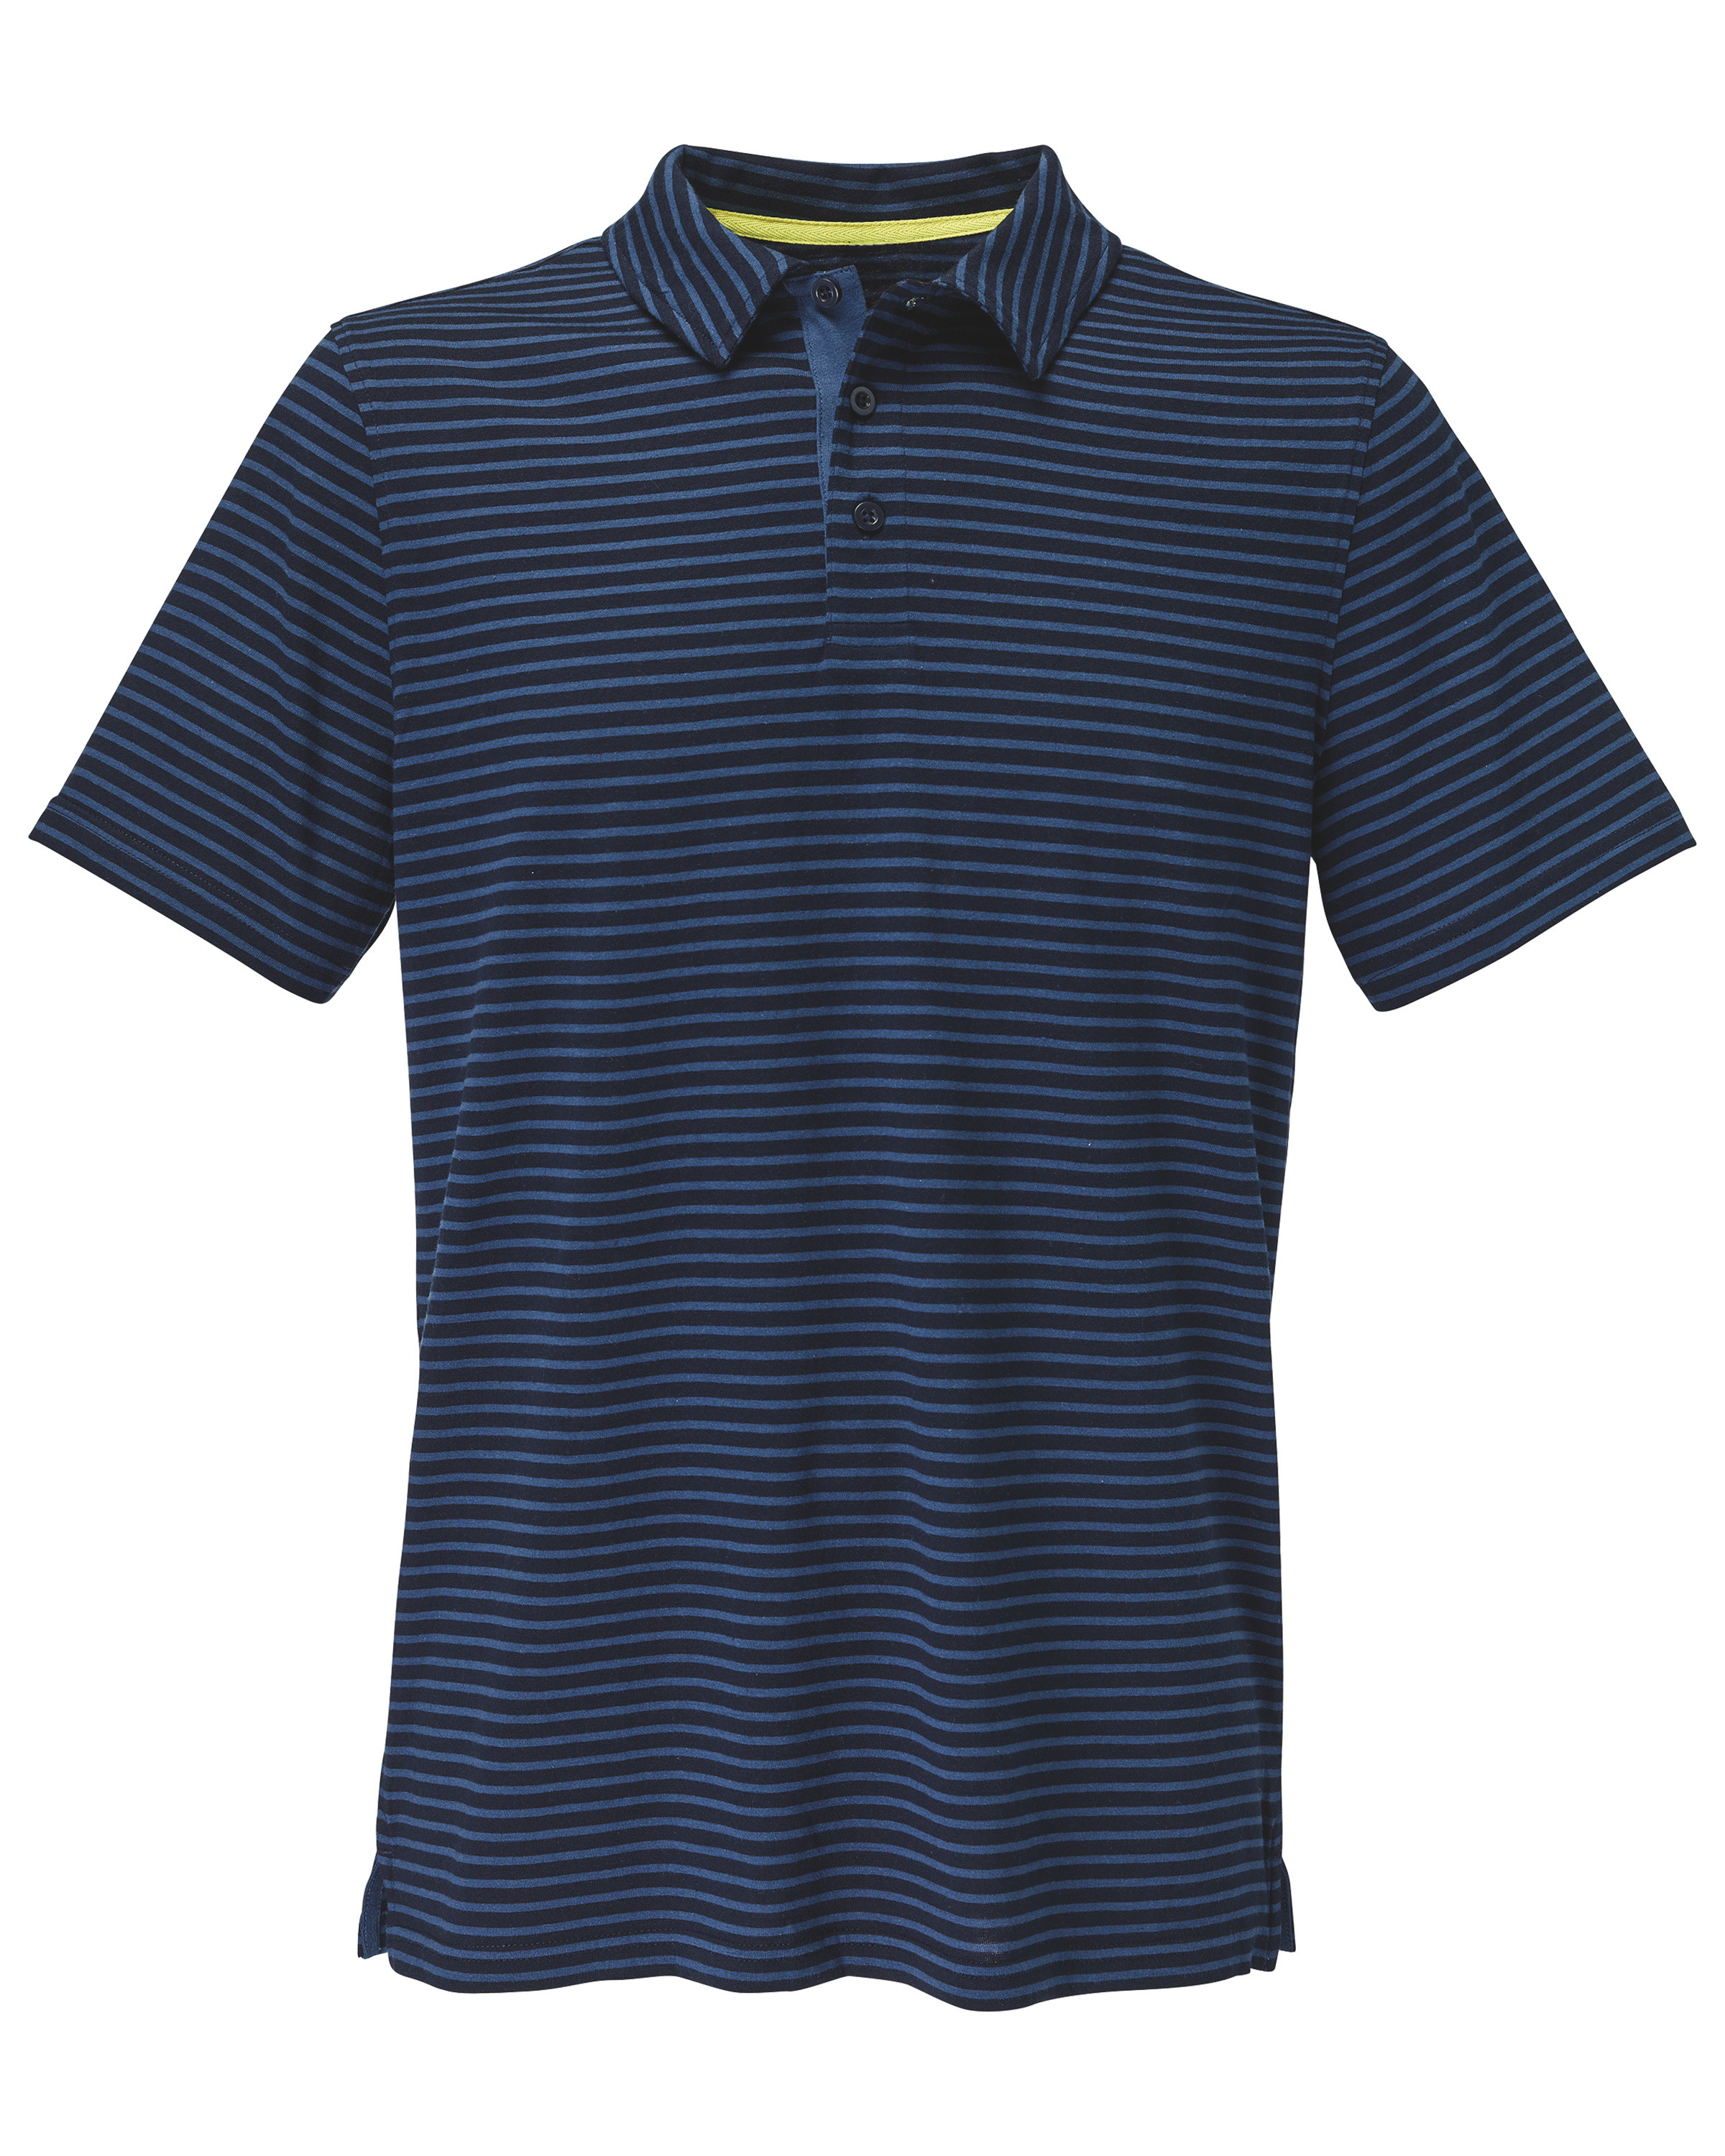 Avenue Men's Navy Blue Polo Shirt